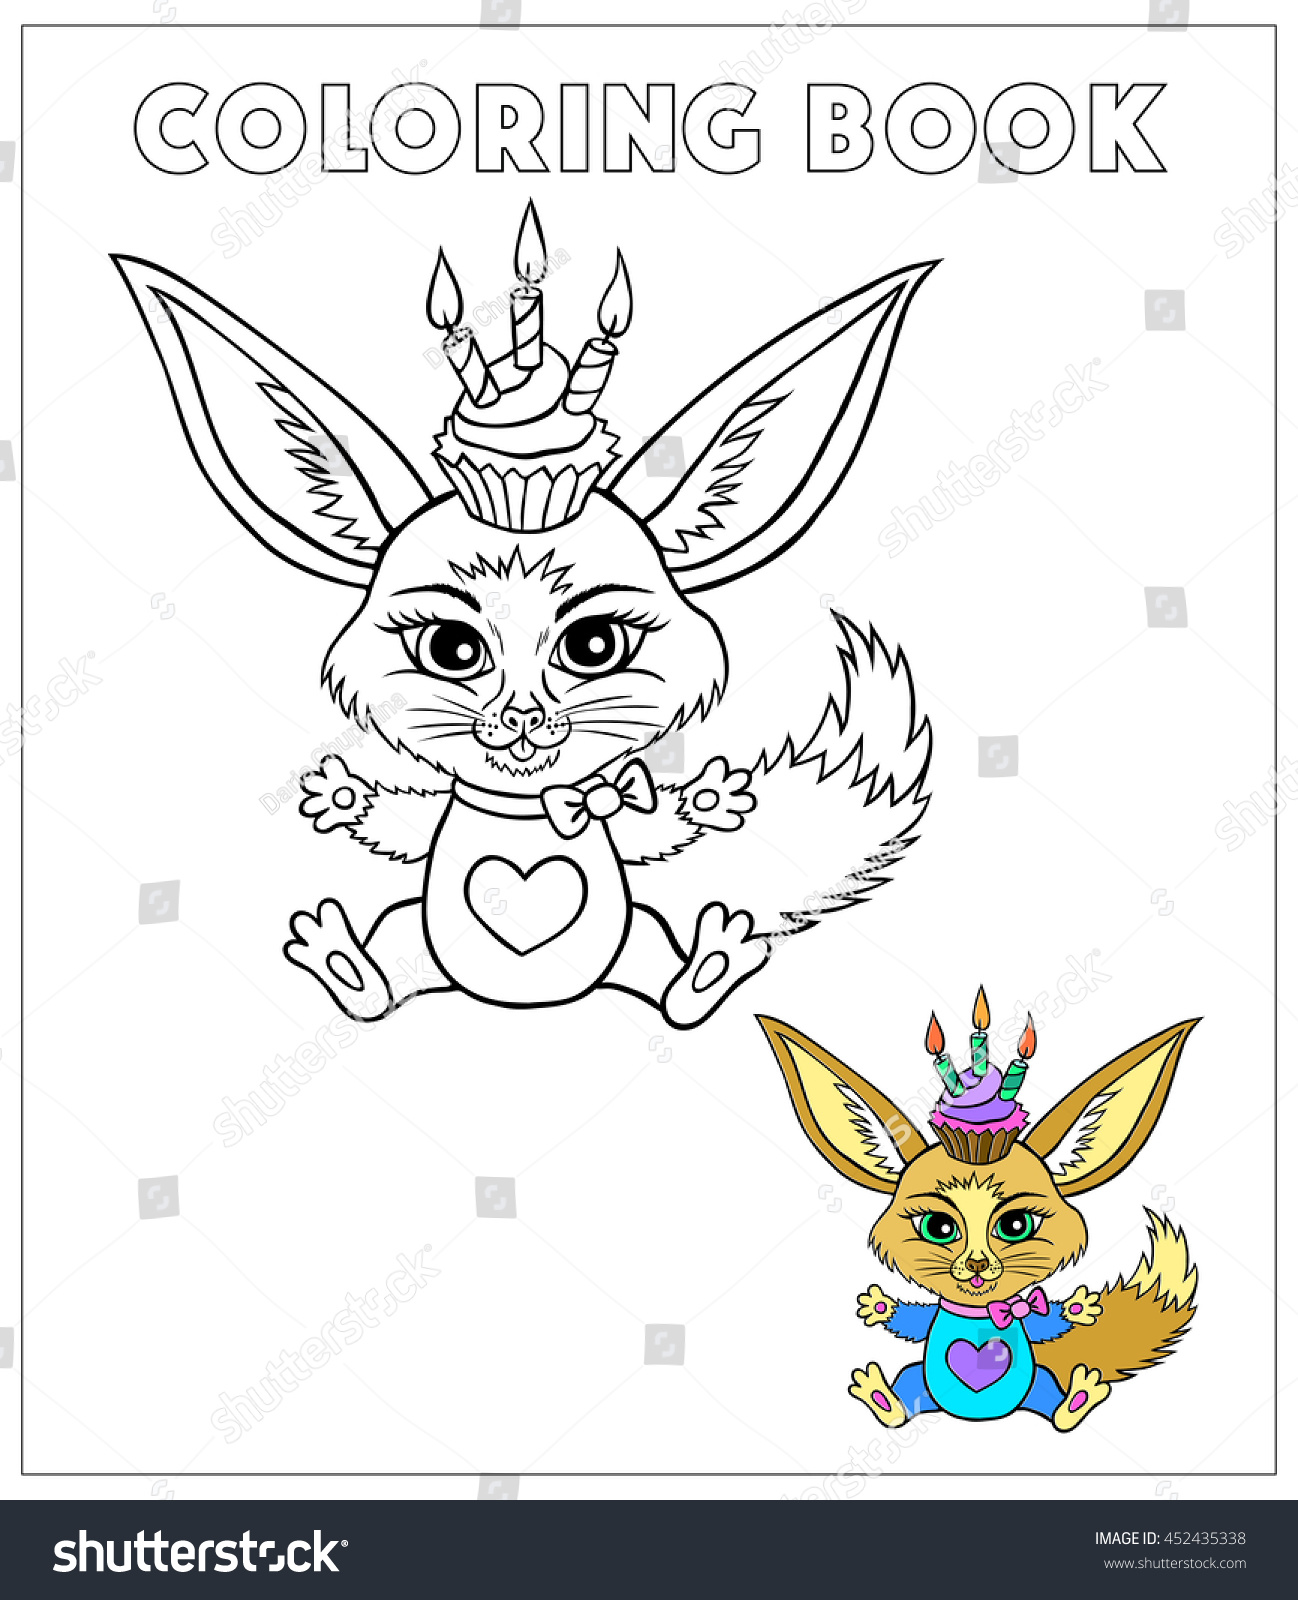 The coloring book race relations